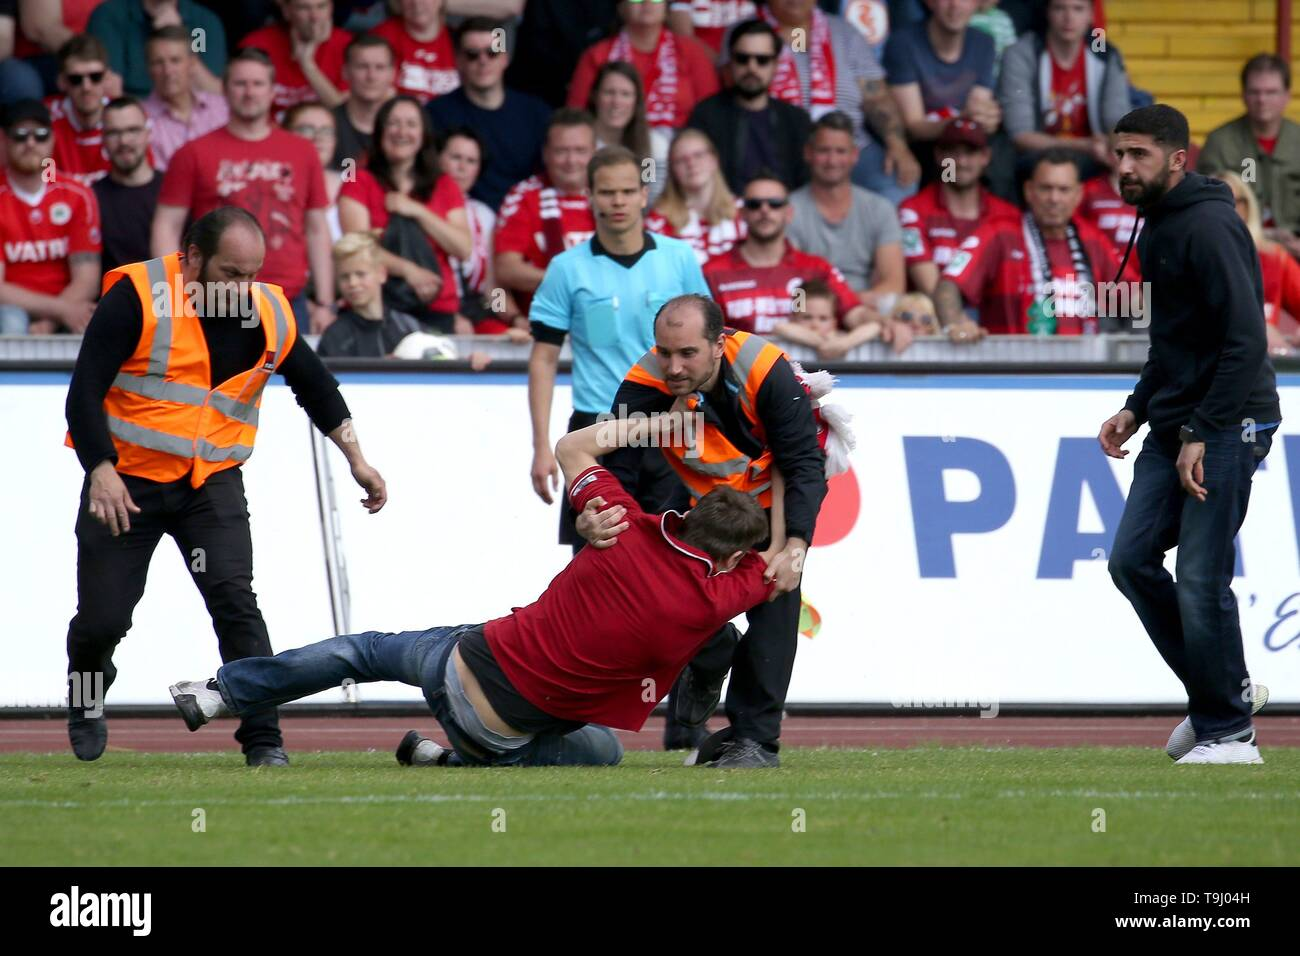 Oberhausen, Germany. 18th May, 2019. firo: 18.05.2019 Soccer, Regionalliga West, season 2018/2019 Rot-Weiss Oberhausen - SC Verl The speedster is placed by a folder. | usage worldwide Credit: dpa/Alamy Live News - Stock Image